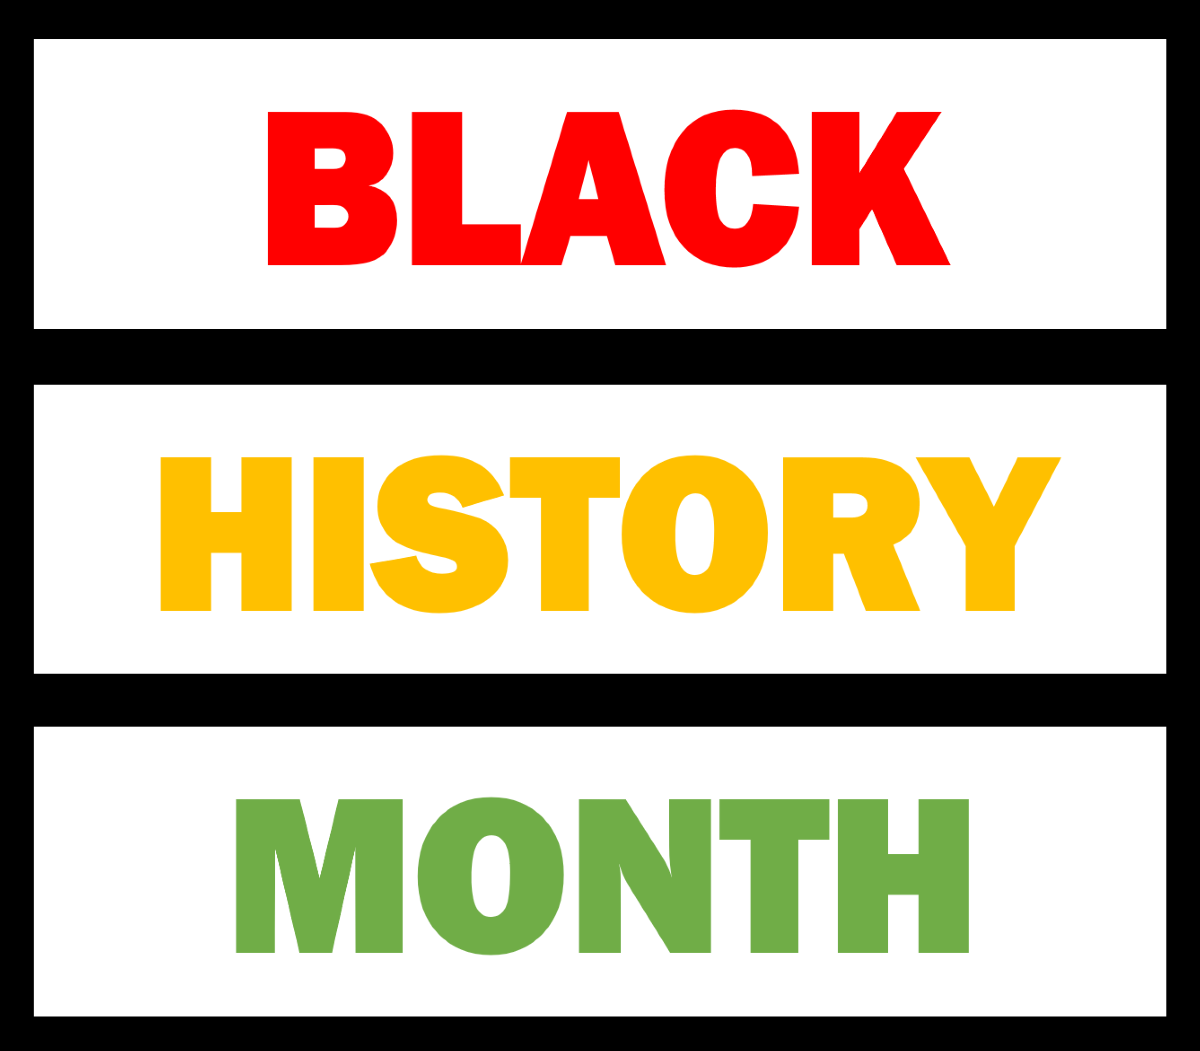 image-BHM graphic 2.png